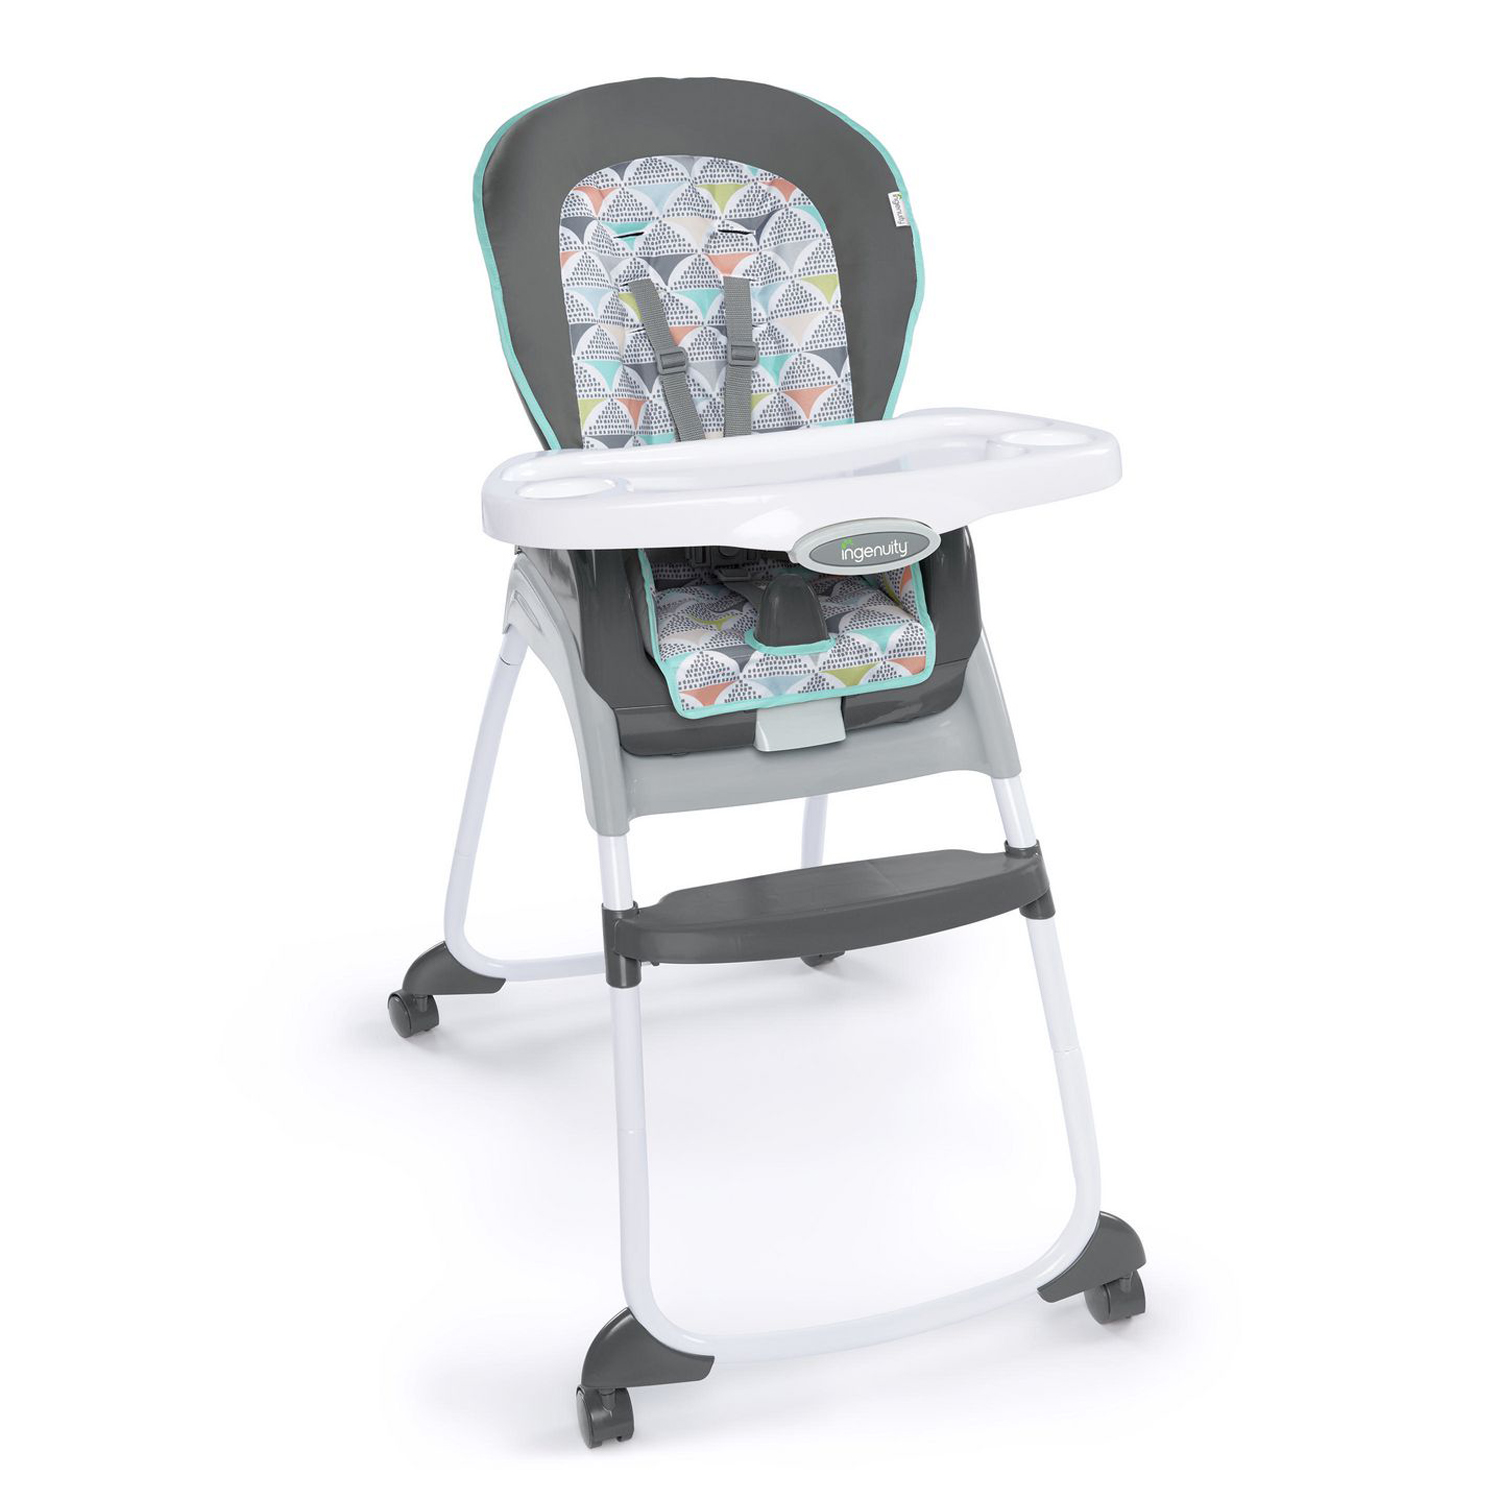 Best high chair overall – Ingenuity Trio 3-in-1 High Chair with wheels